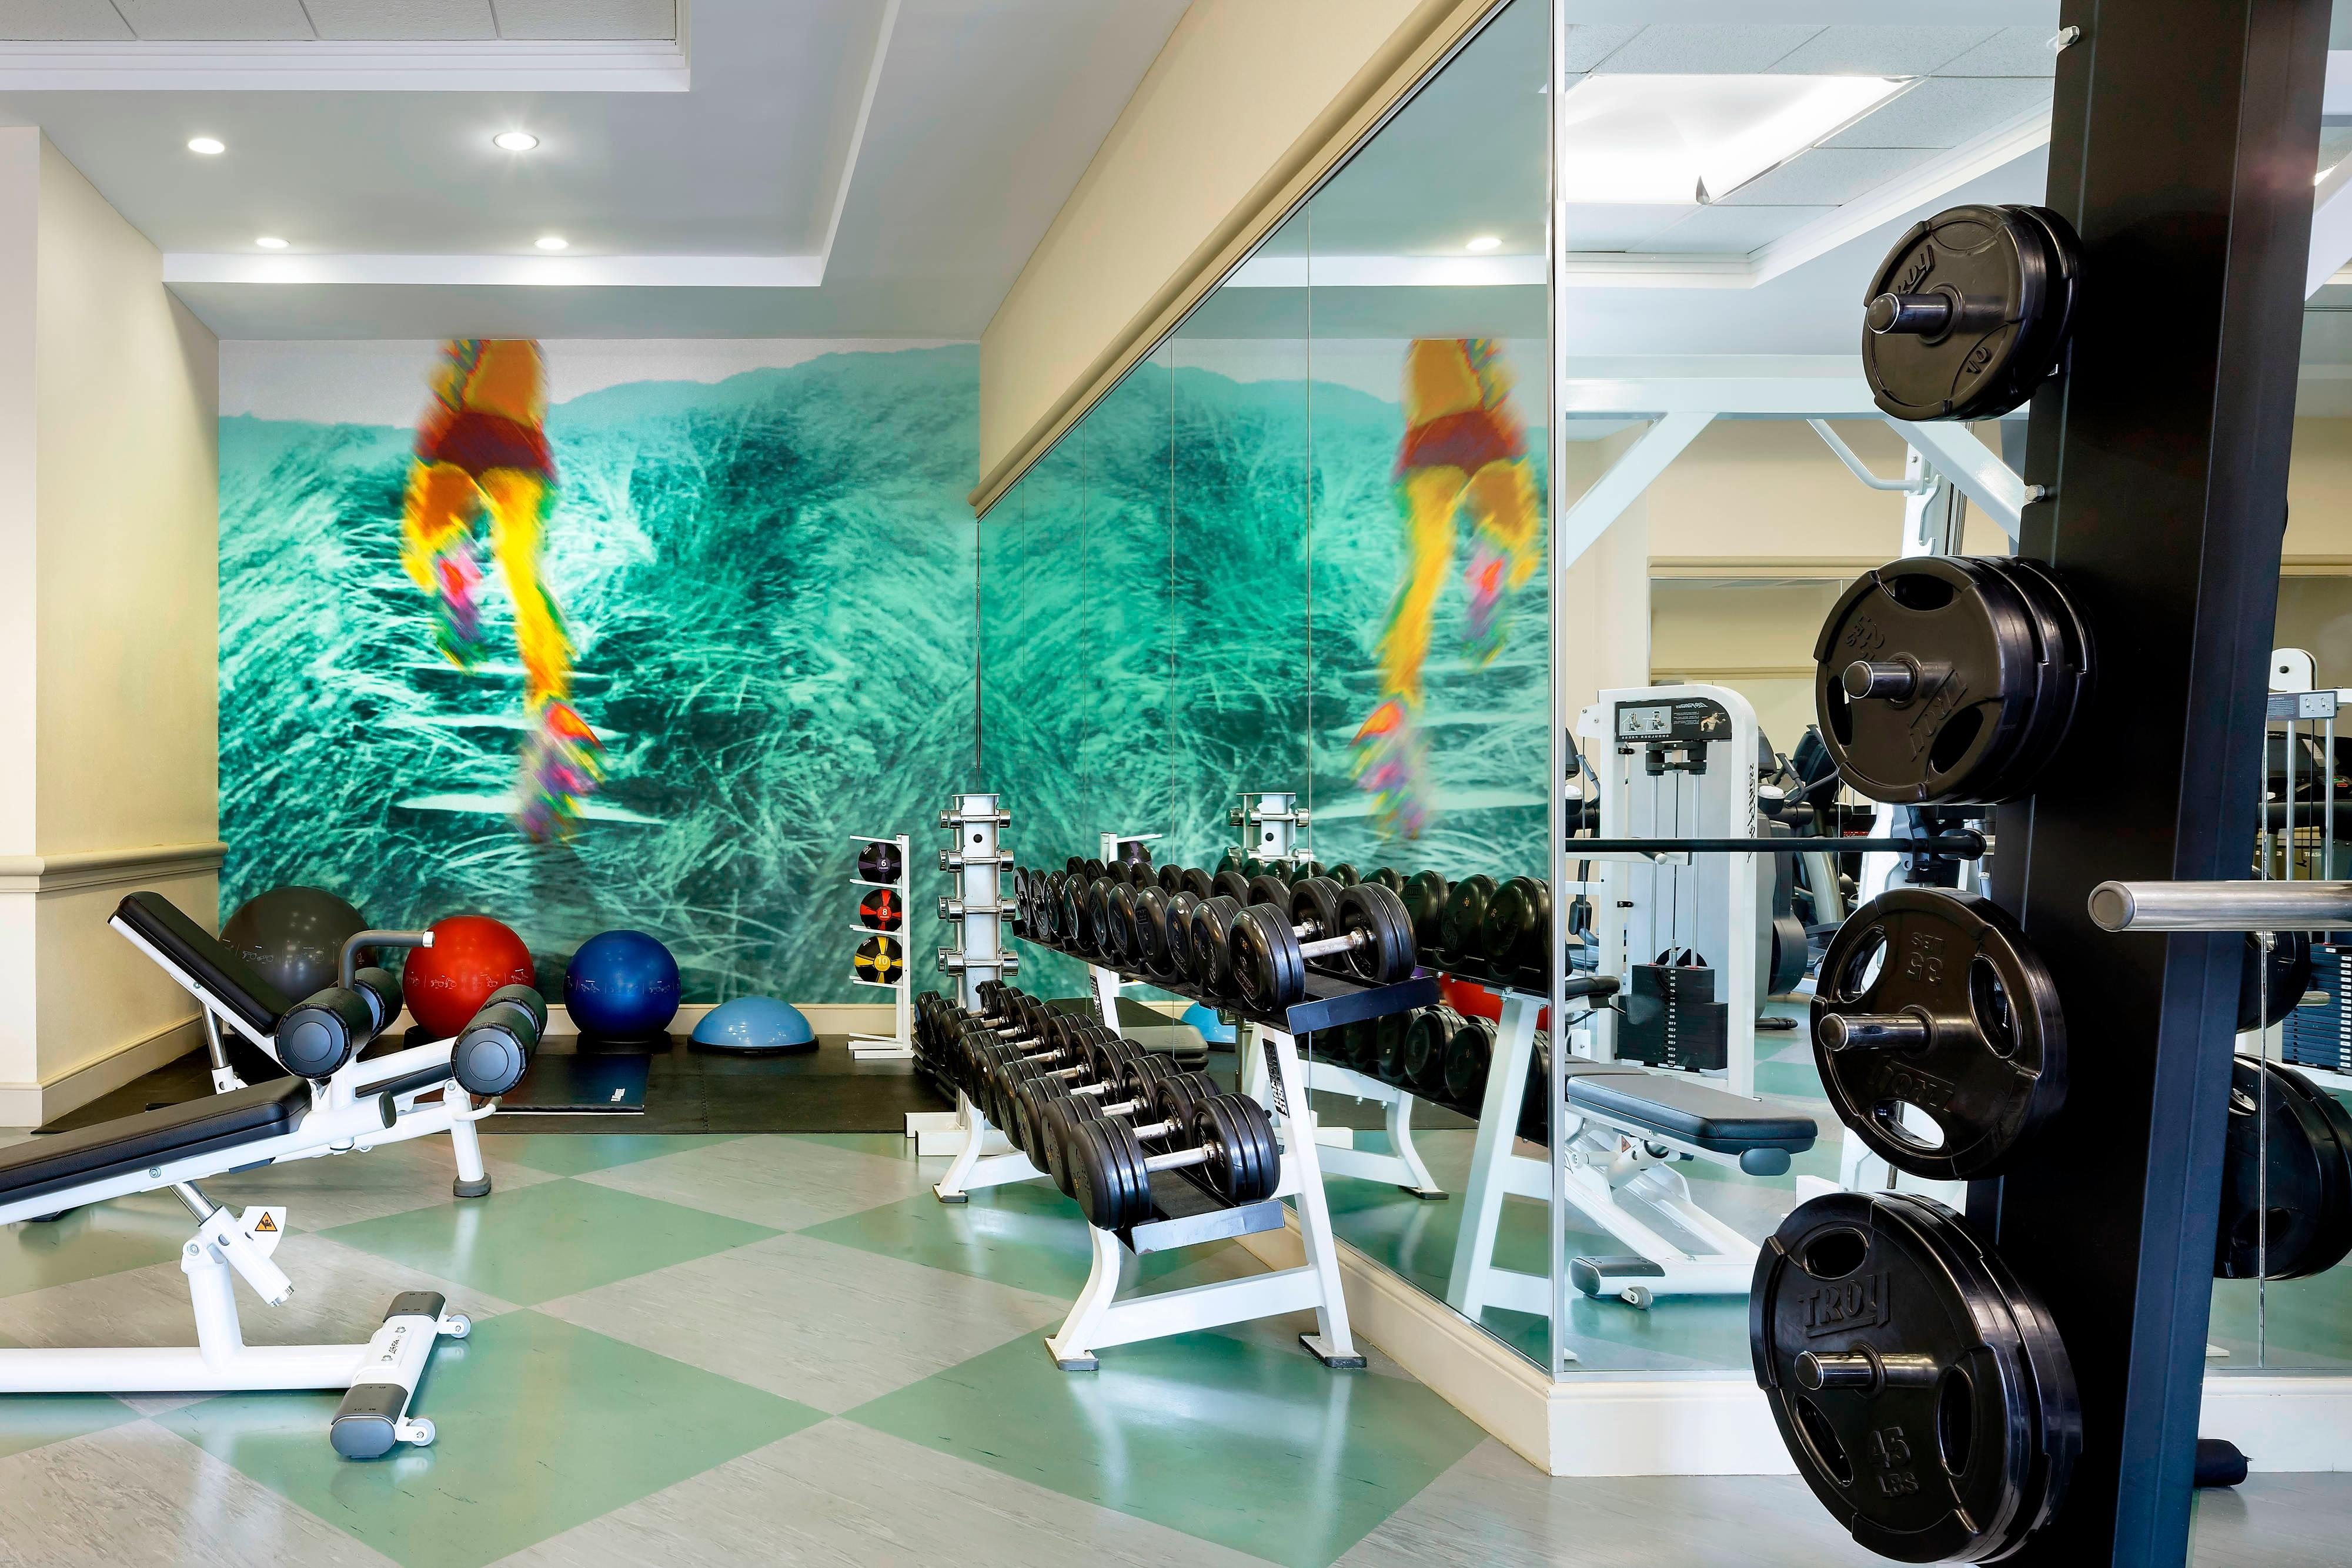 WestinWorkOUT Health Club/Fitness Center